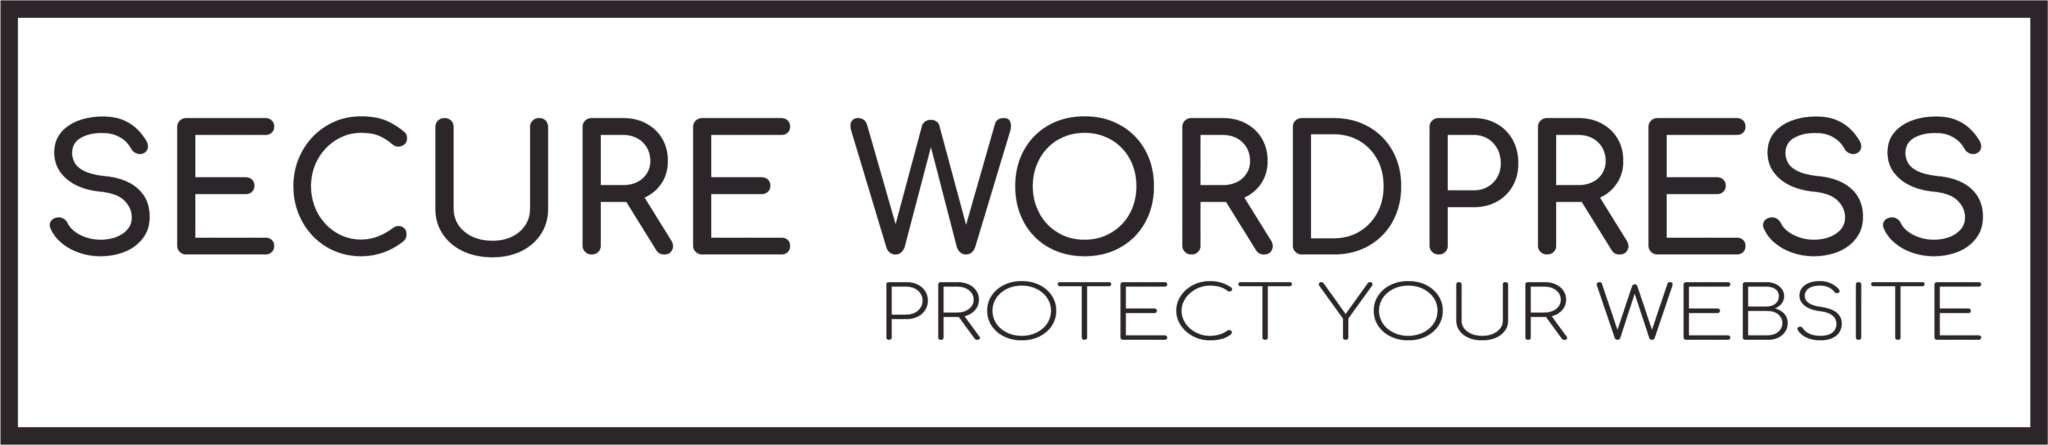 Secure WordPress. Protect Your Website.